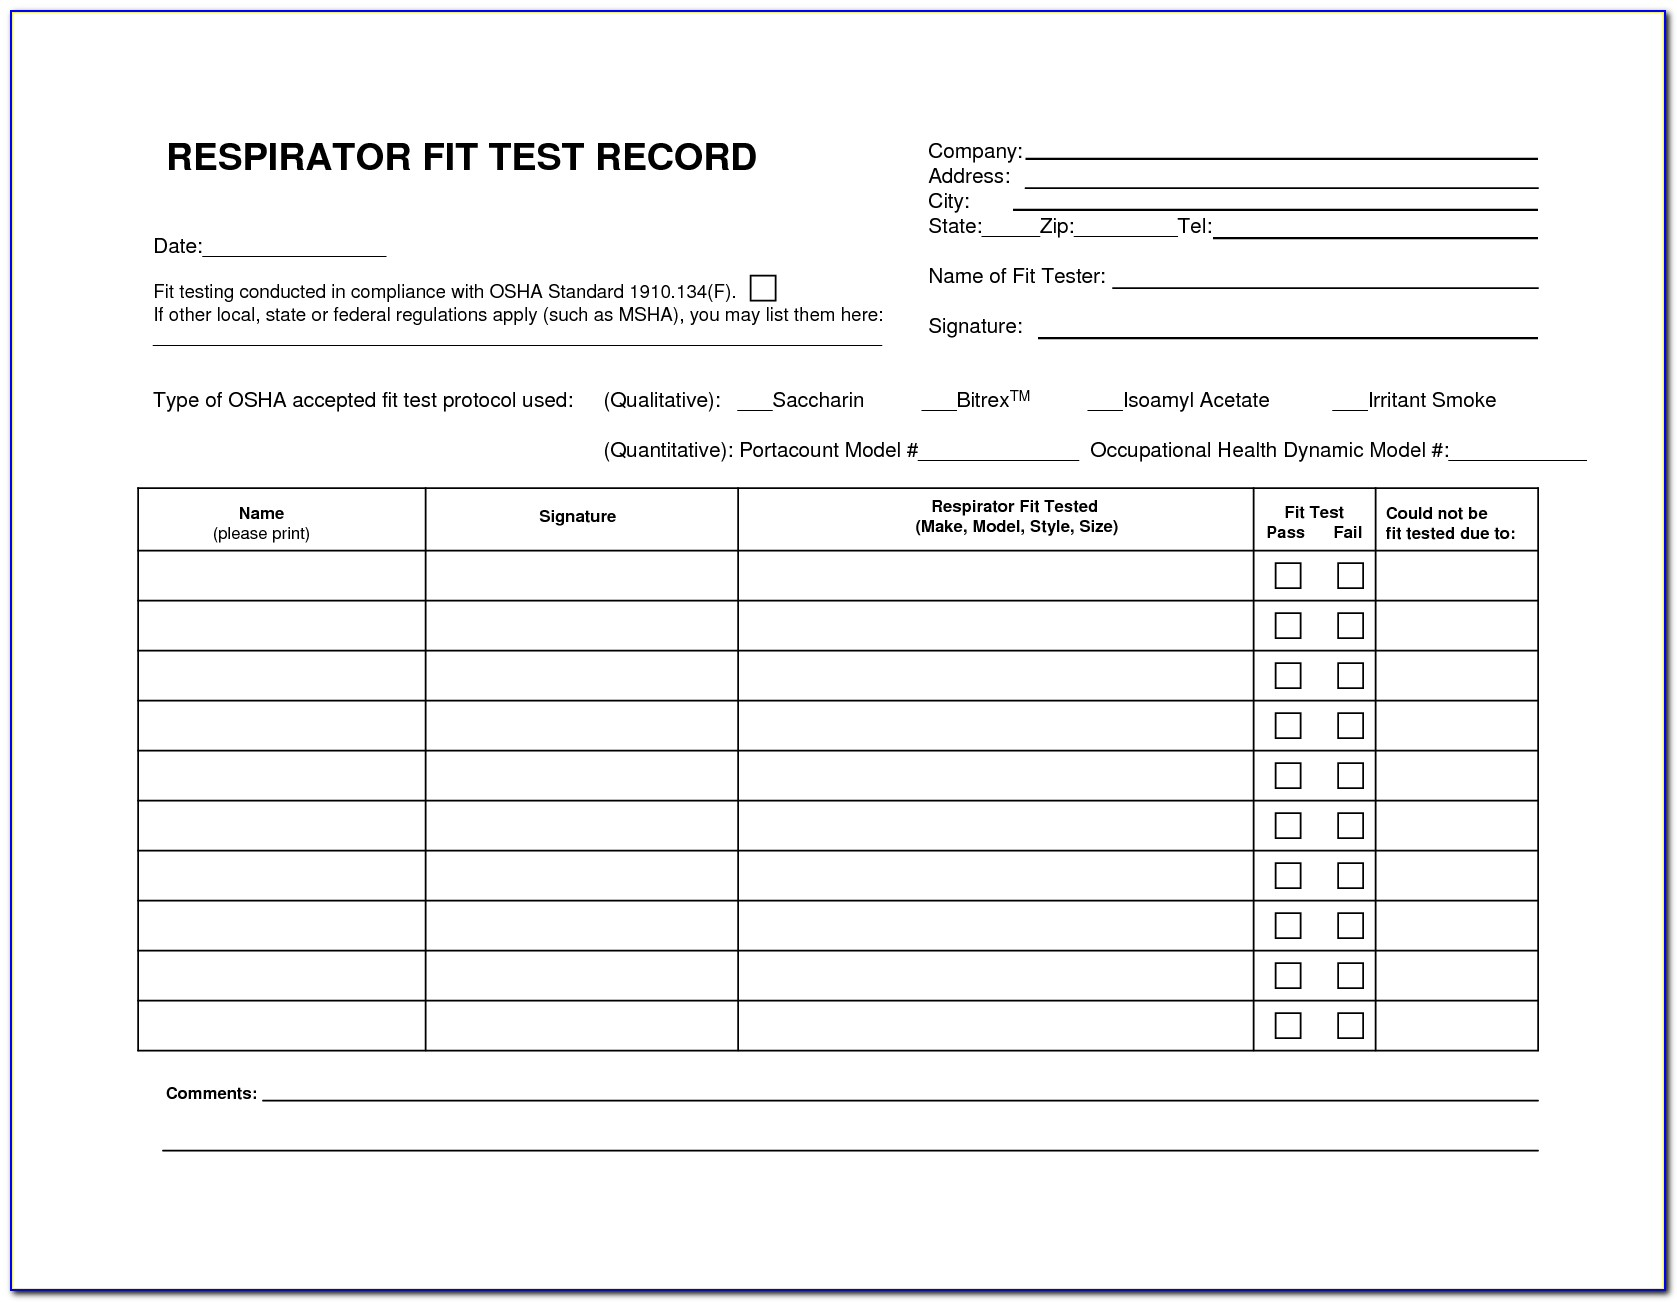 Respirator Fit Test Form Qualitative